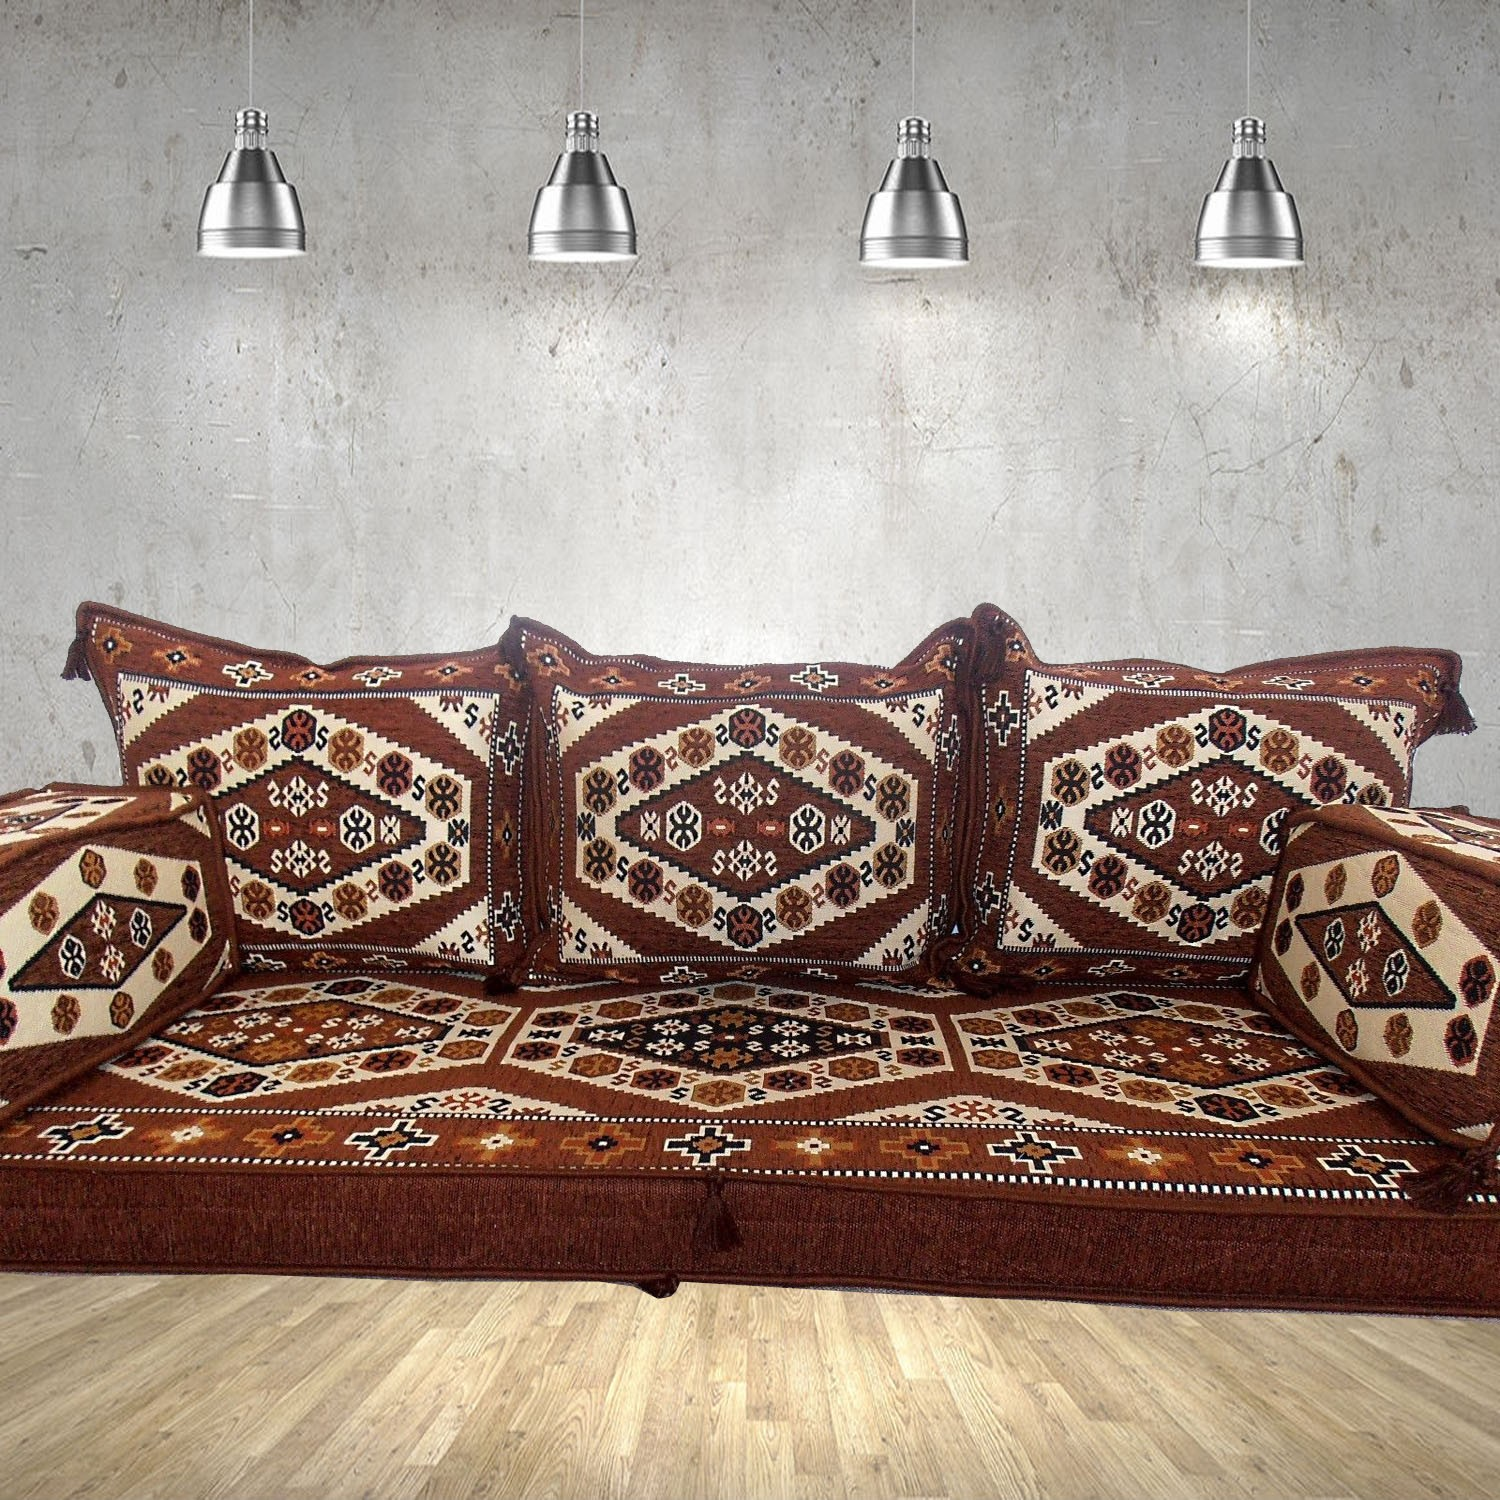 Floor sofa with triple back pillows - SHI_FS330